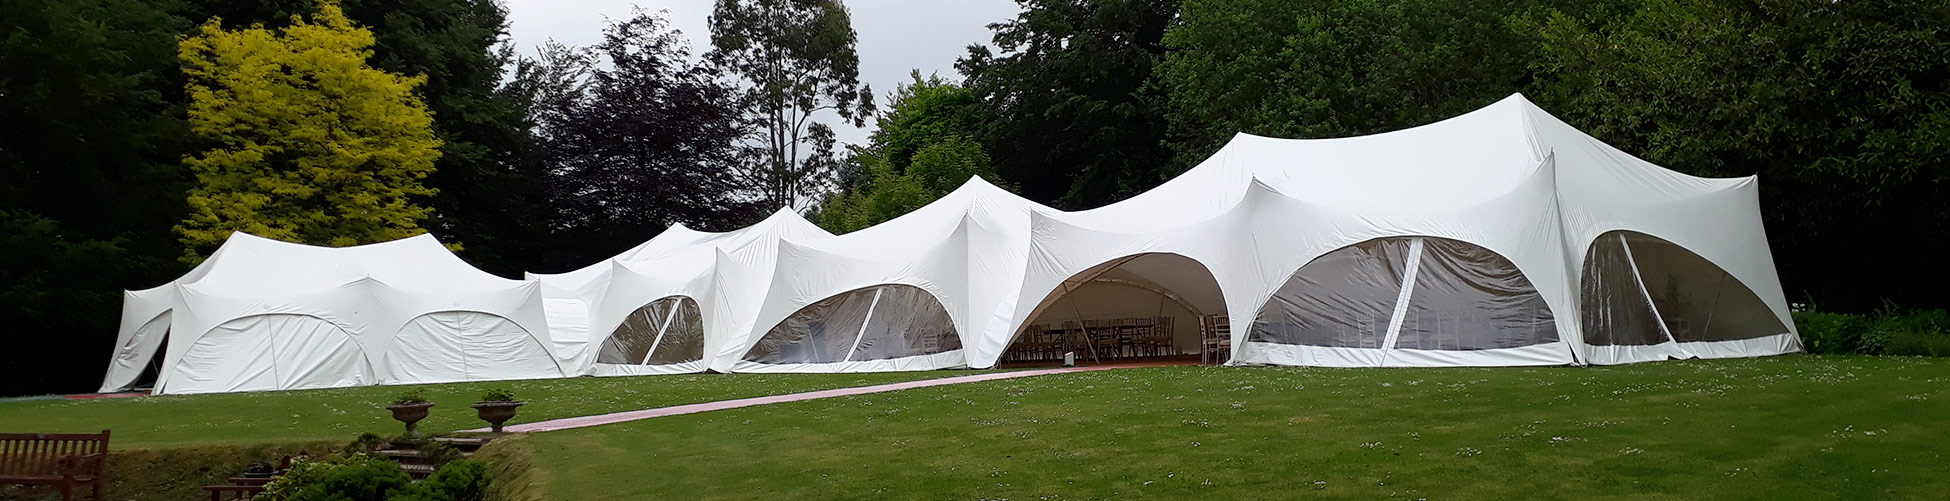 Party marquee hire Fareham